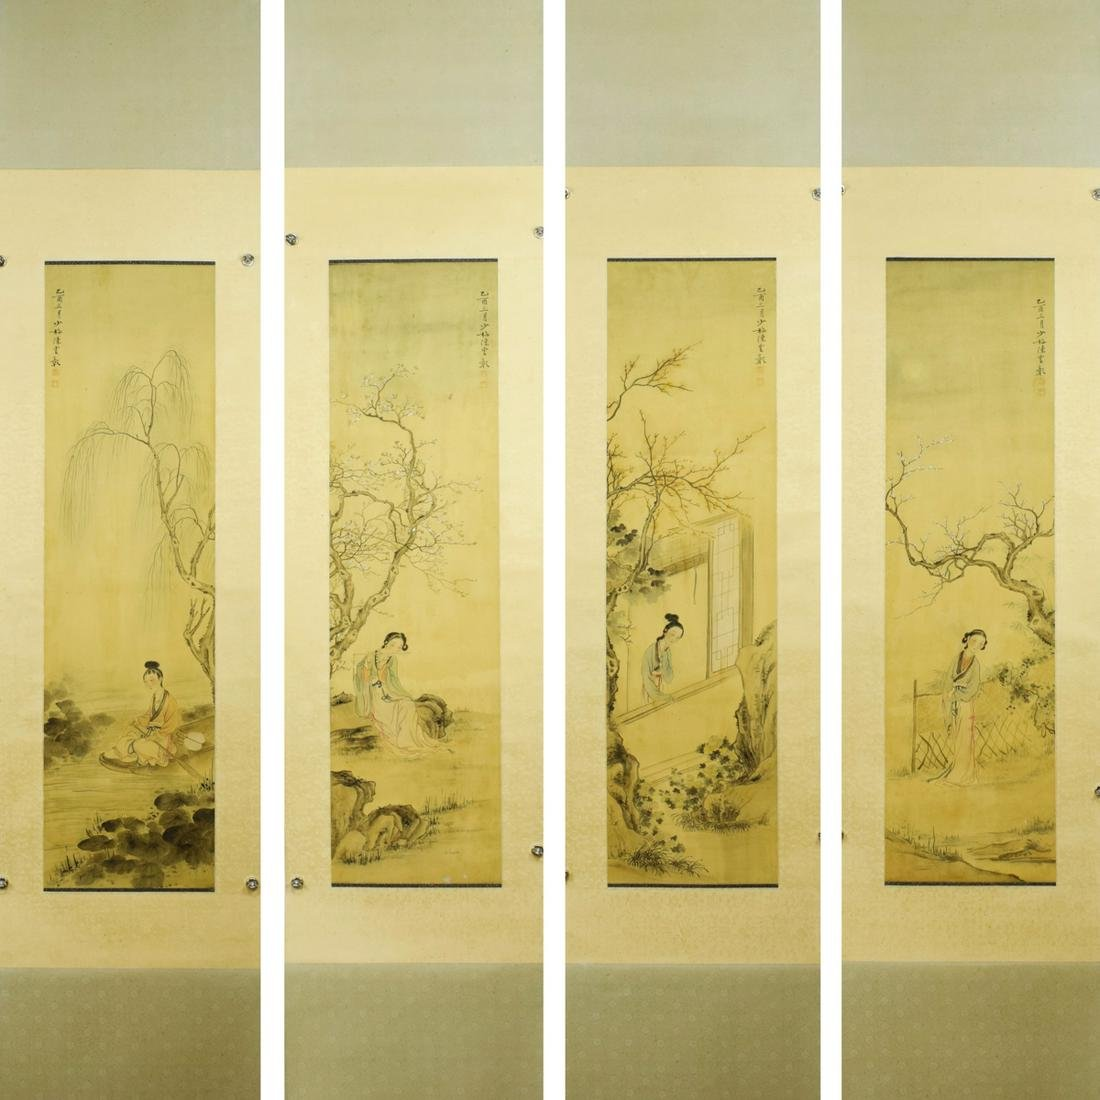 4 Pcs Chinese Figures Painting, Chen Shaomei Mark